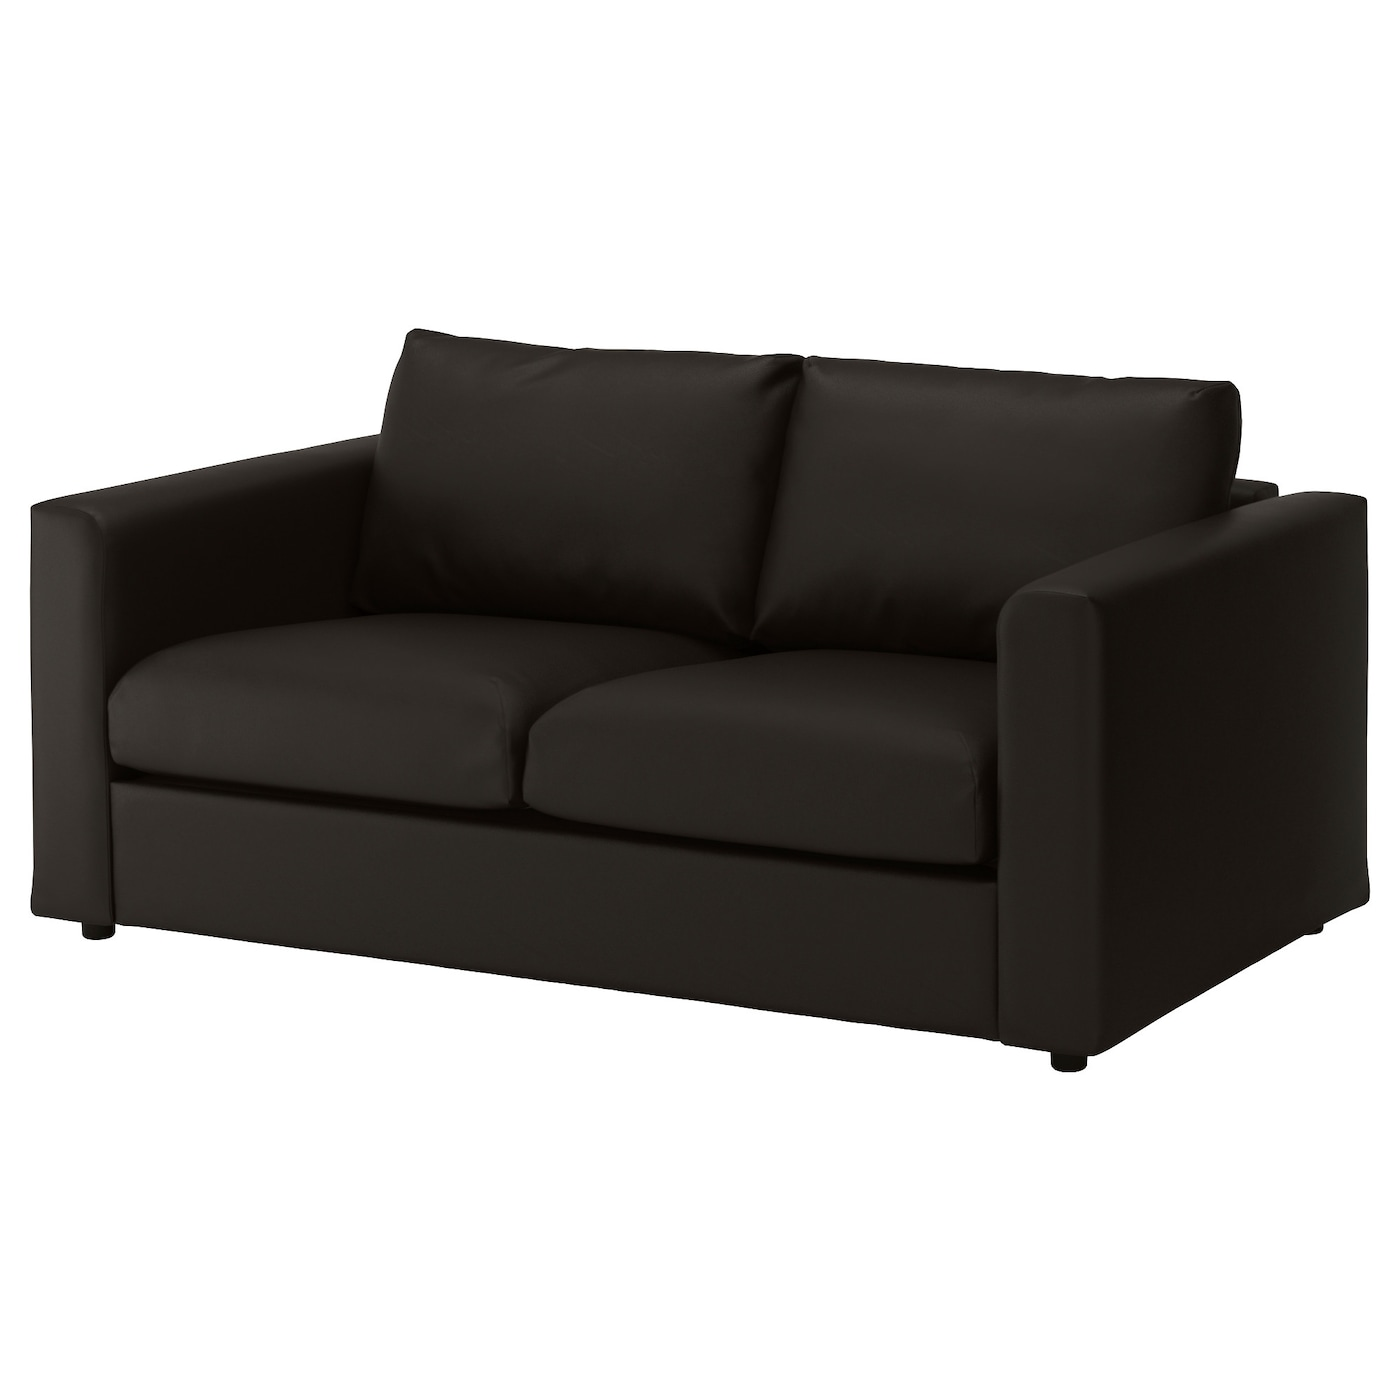 vimle 2 seat sofa farsta black ikea. Black Bedroom Furniture Sets. Home Design Ideas